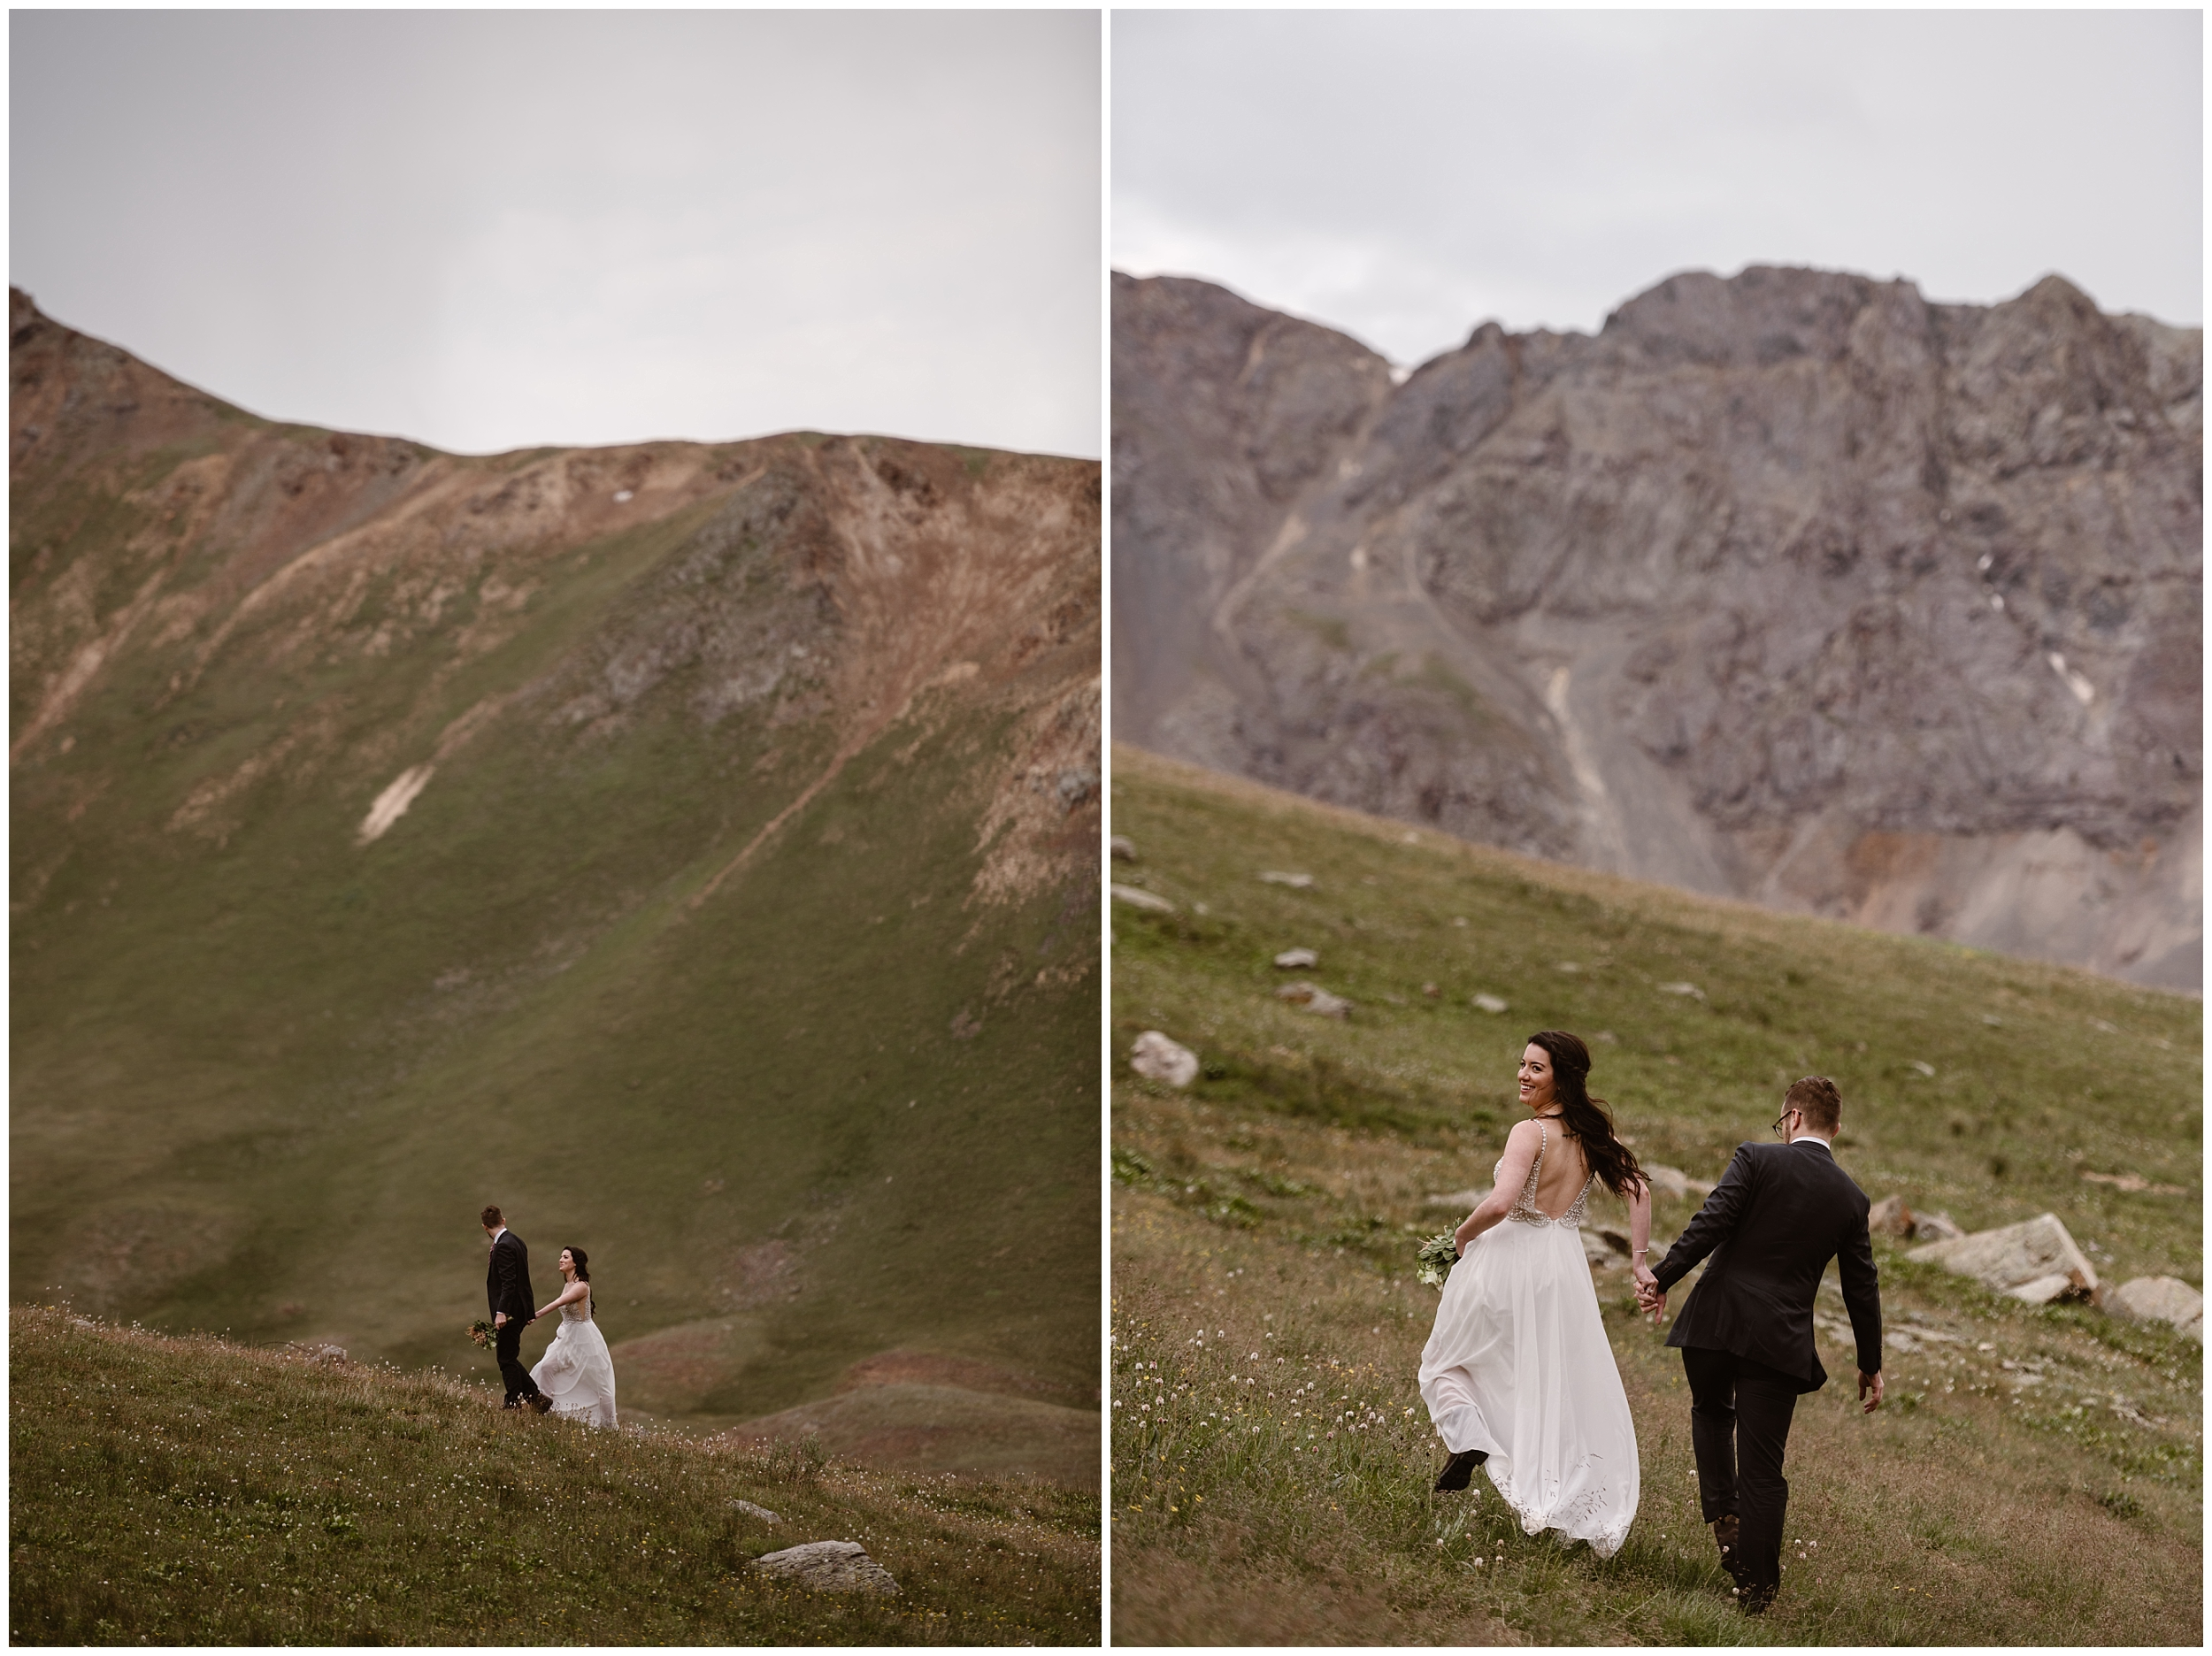 These side-by-side elopement pictures show Katie and Logan, the bride and groom, hiking up a green meadow toward the top of a basin in Ouray, Colorado, where they'll have their own secluded elopement ceremony. This adventure photography was captured by Adventure Instead, an elopement wedding photographer.